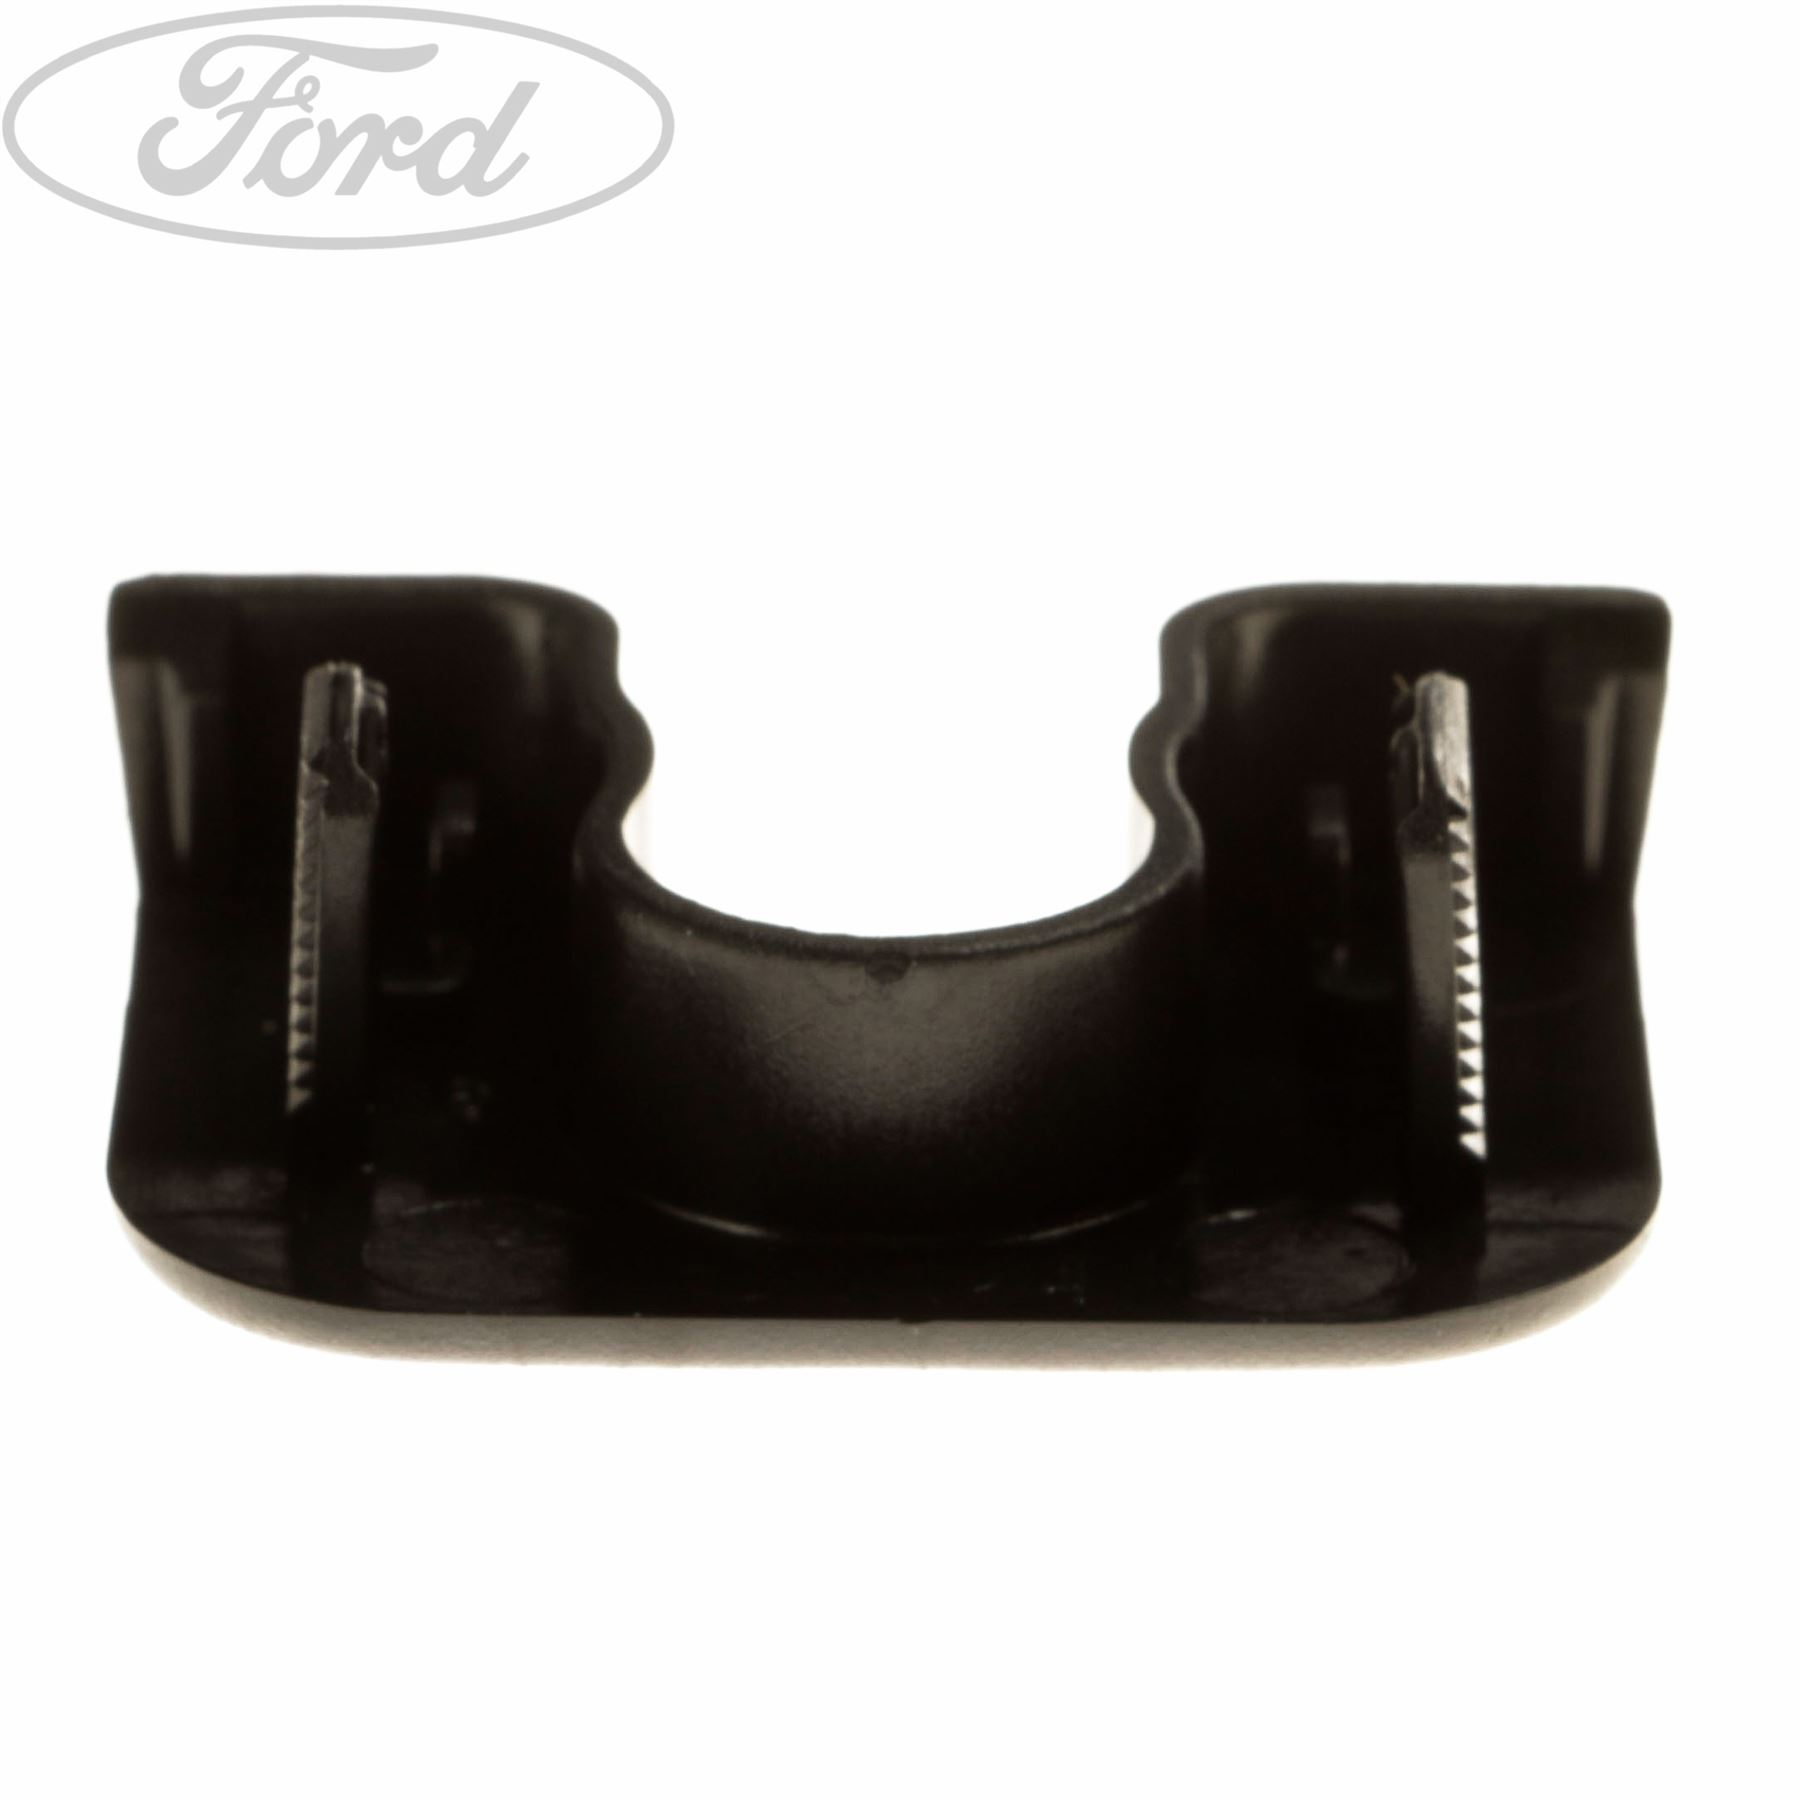 genuine ford fiesta mk7 rear parcel shelf fastening. Black Bedroom Furniture Sets. Home Design Ideas